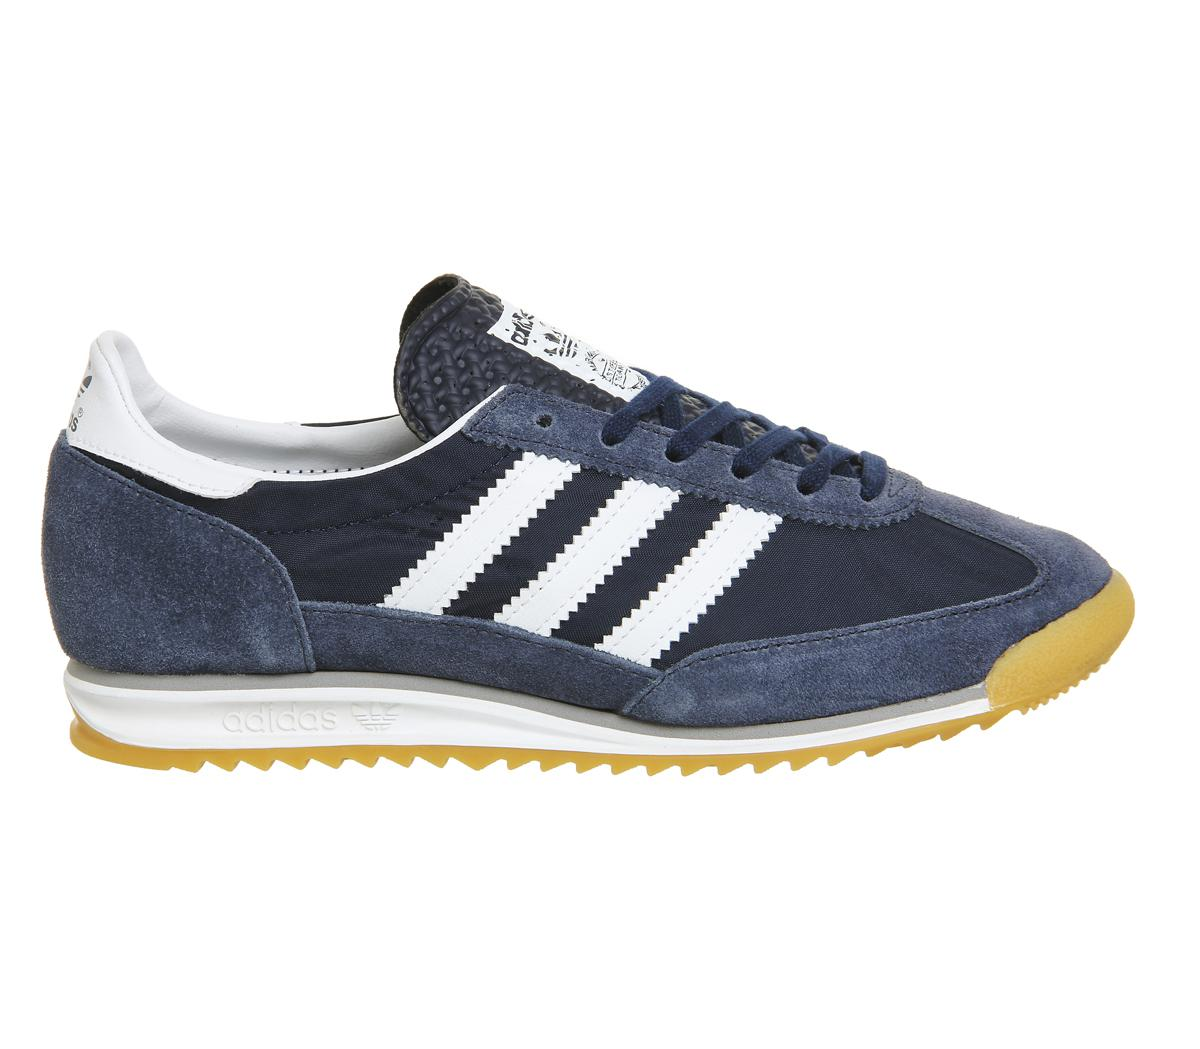 adidas Suede Sl 72 in Navy (Blue) for